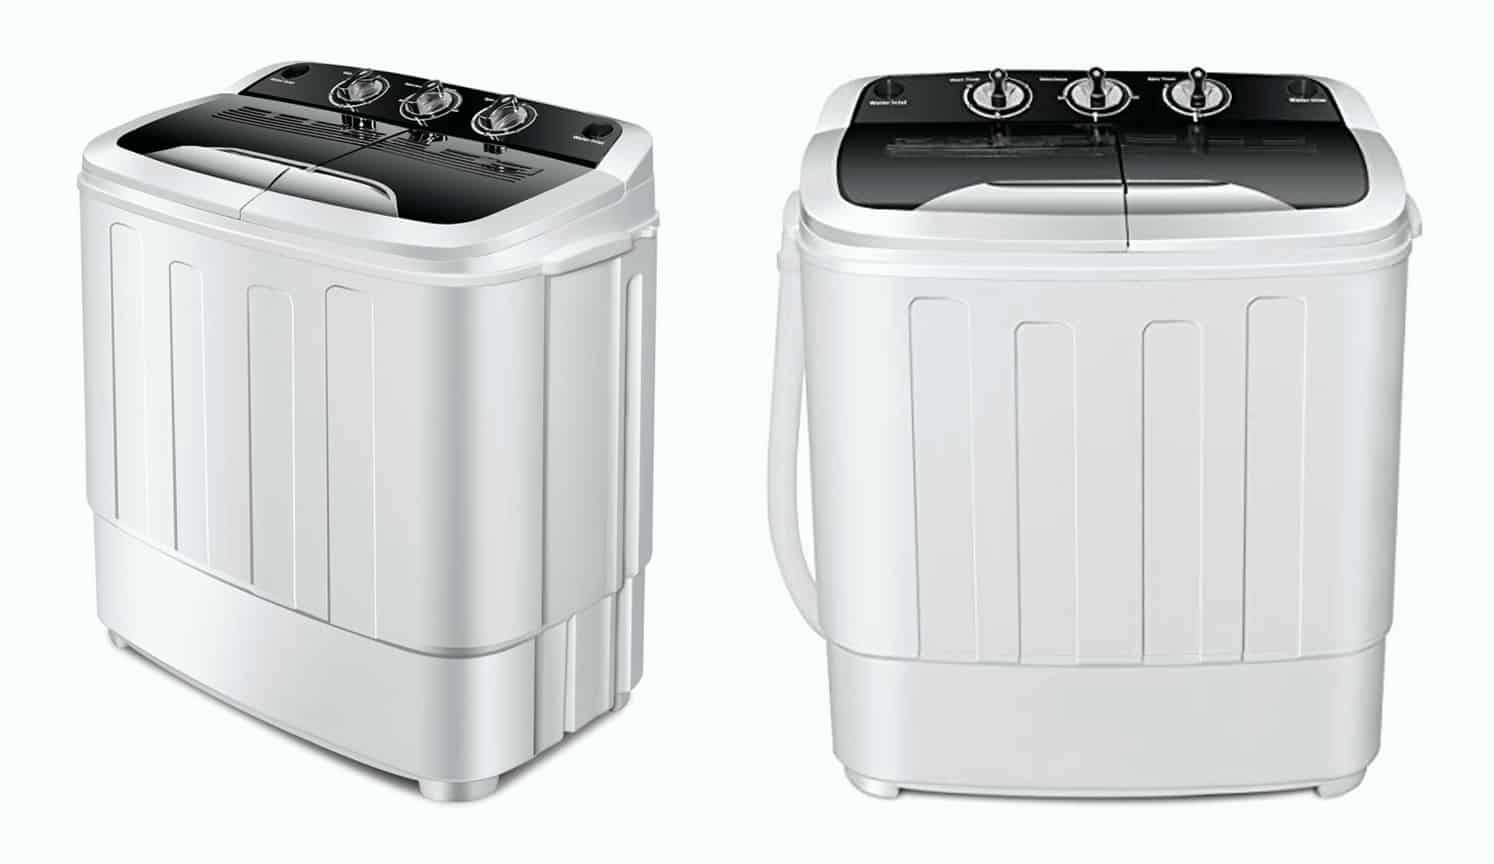 Portable Compact Washing Machine as the third related product of the Best Portable Washing Machine